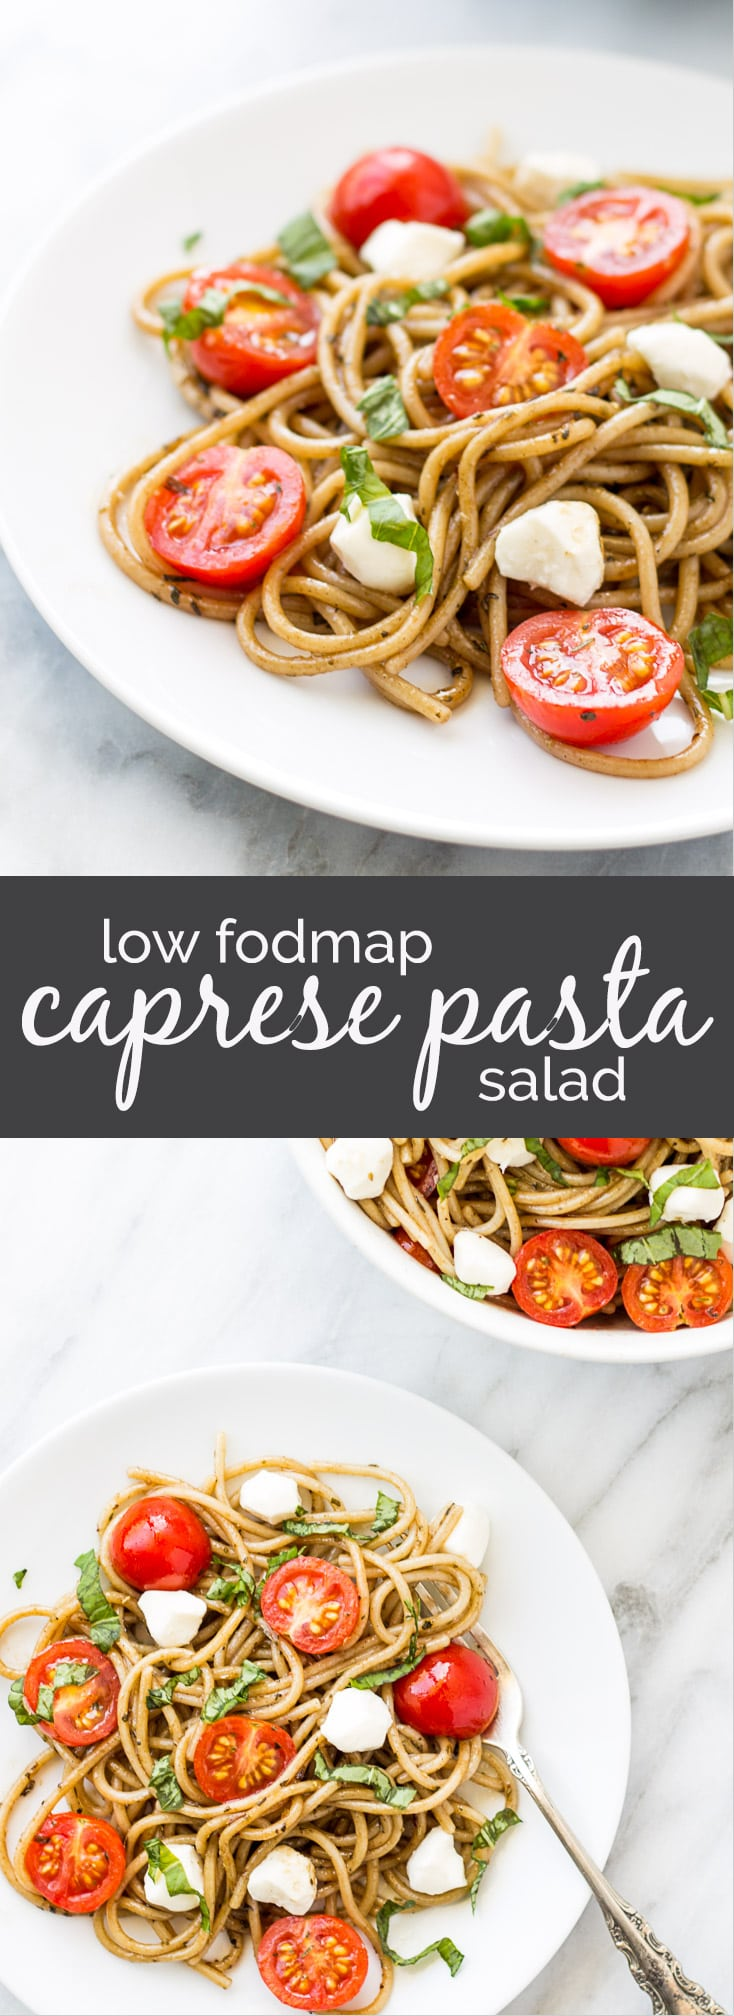 Filled with fresh ingredients and the classic combo of tomatoes, basil and balsamic, this Low Fodmap Caprese Pasta Salad just screams summer! Serve it warm or cold (how I prefer it), this is a quick gluten free pasta salad is easy to whip up for a light meal.